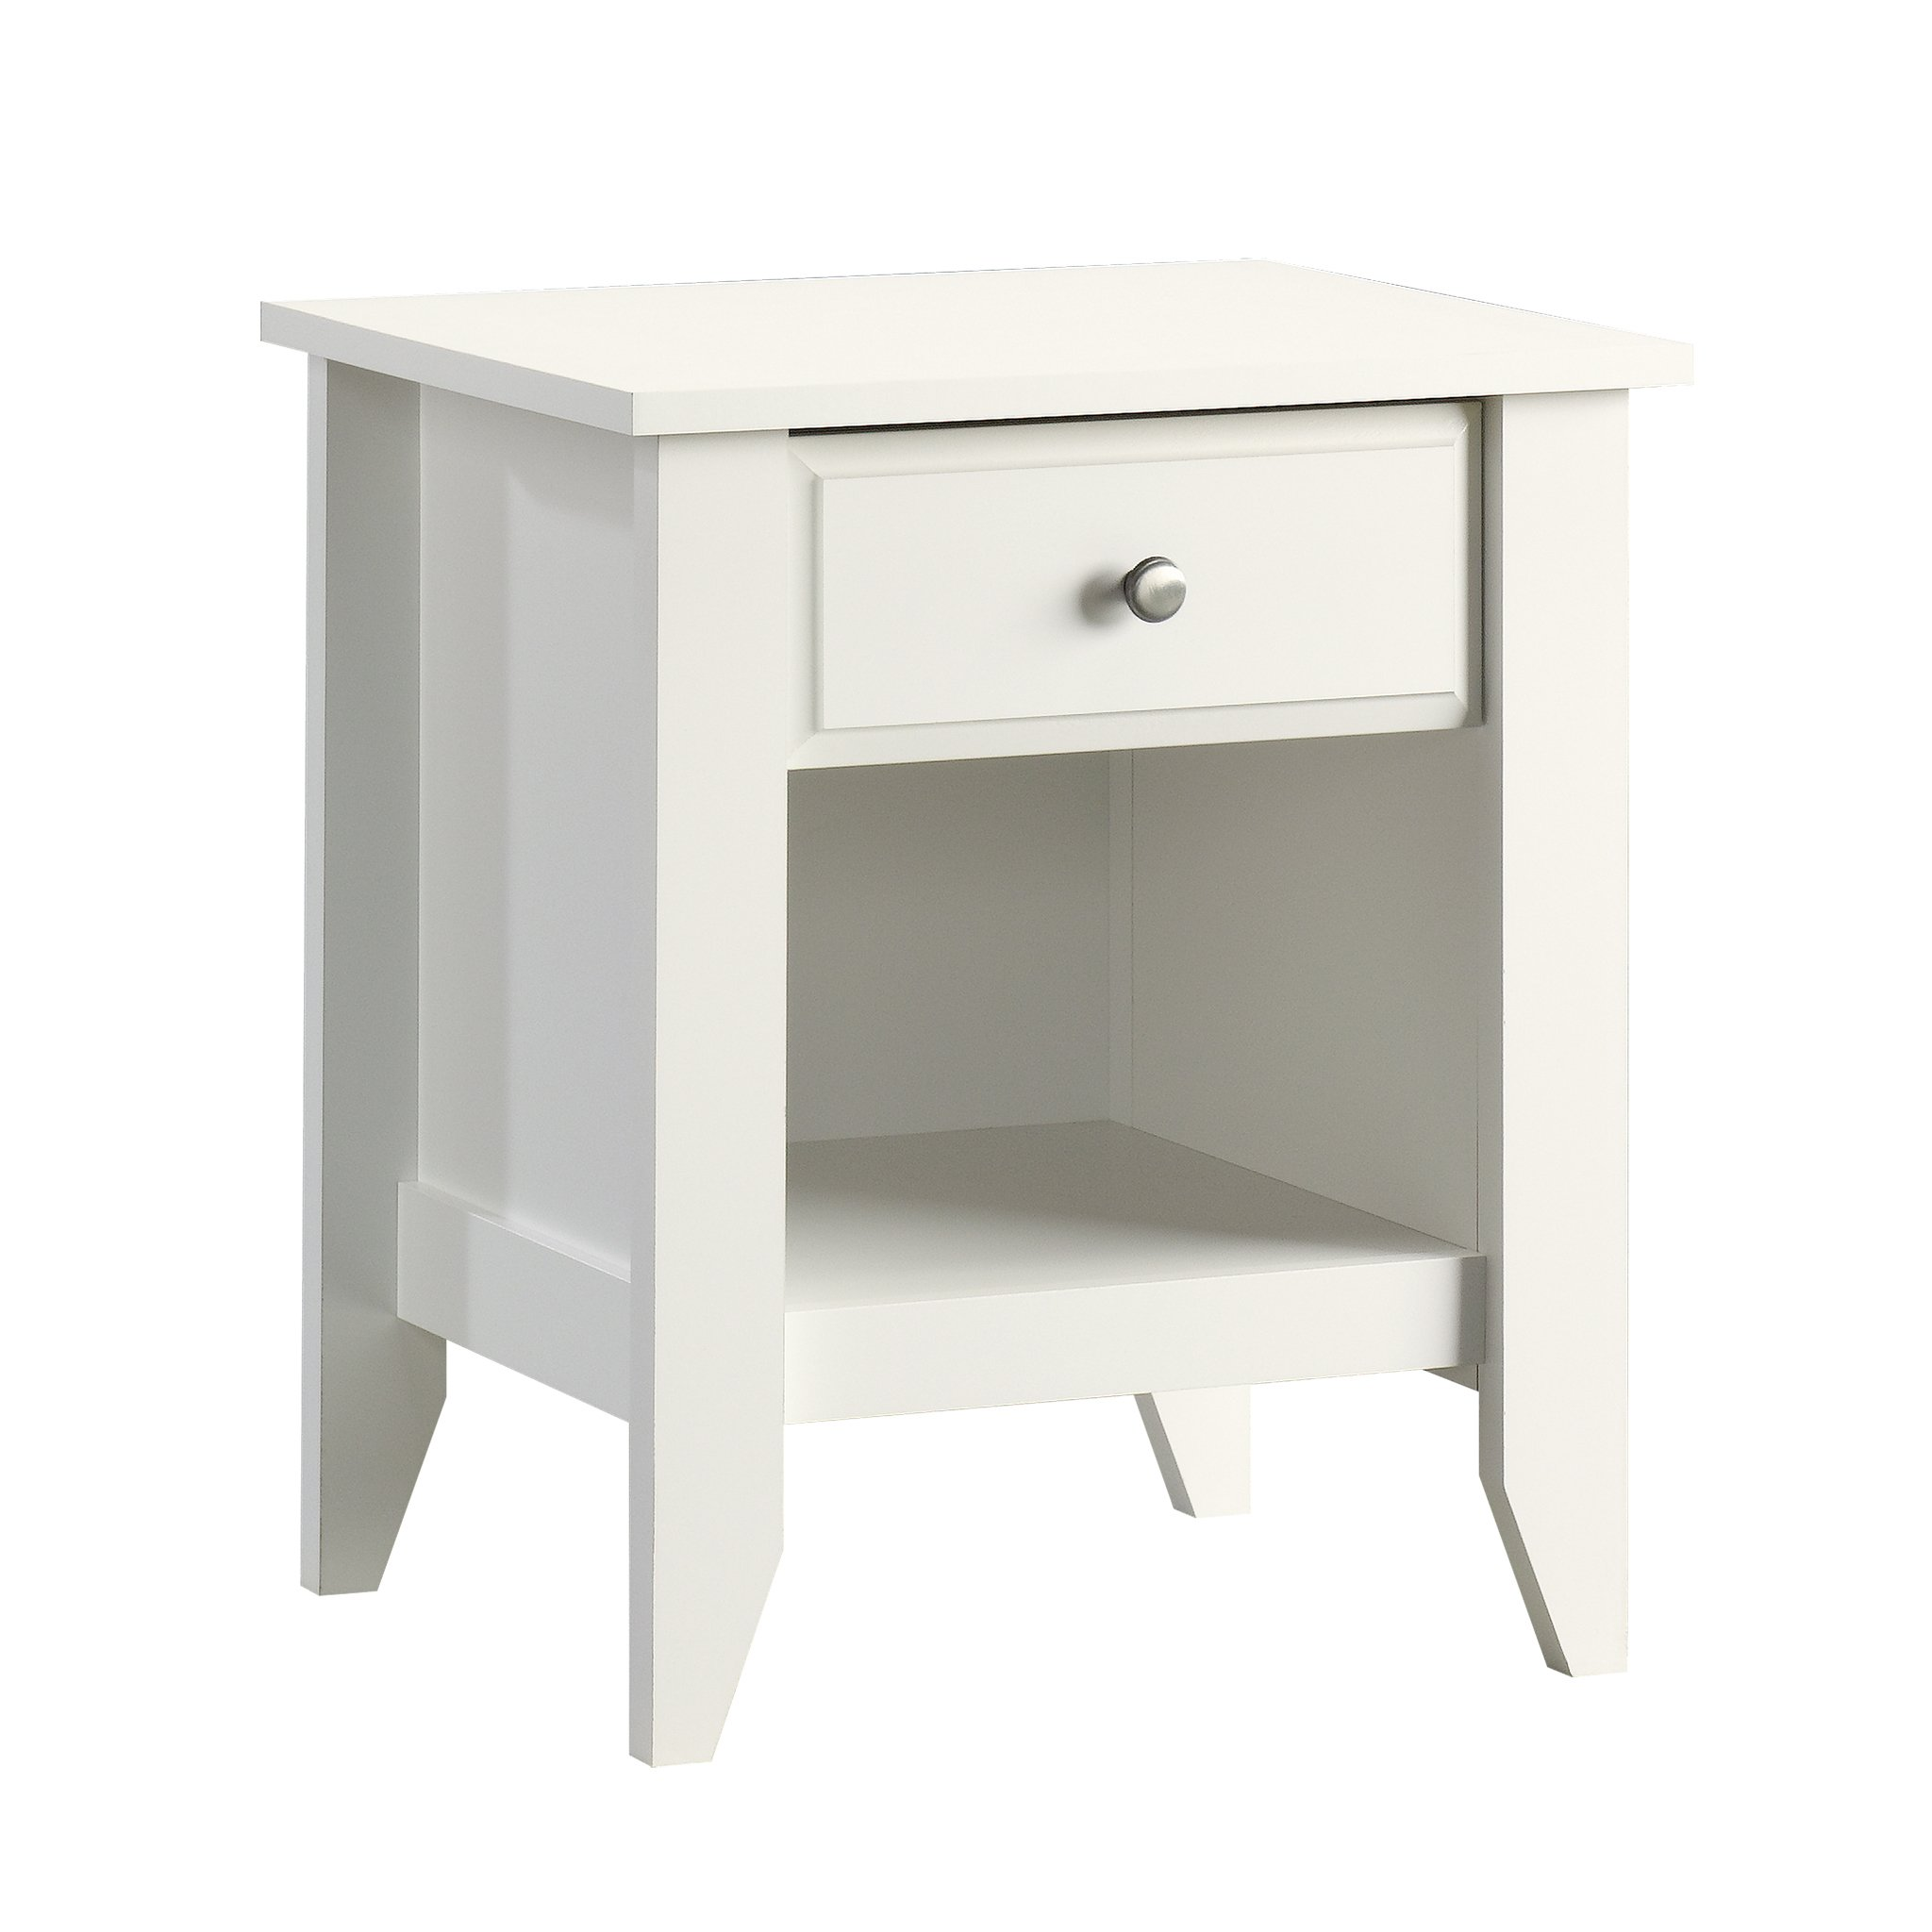 Sauder 411200 Shoal Creek Night Stand, L: 20.87'' x W: 17.48'' x H: 24.06, Soft White finish